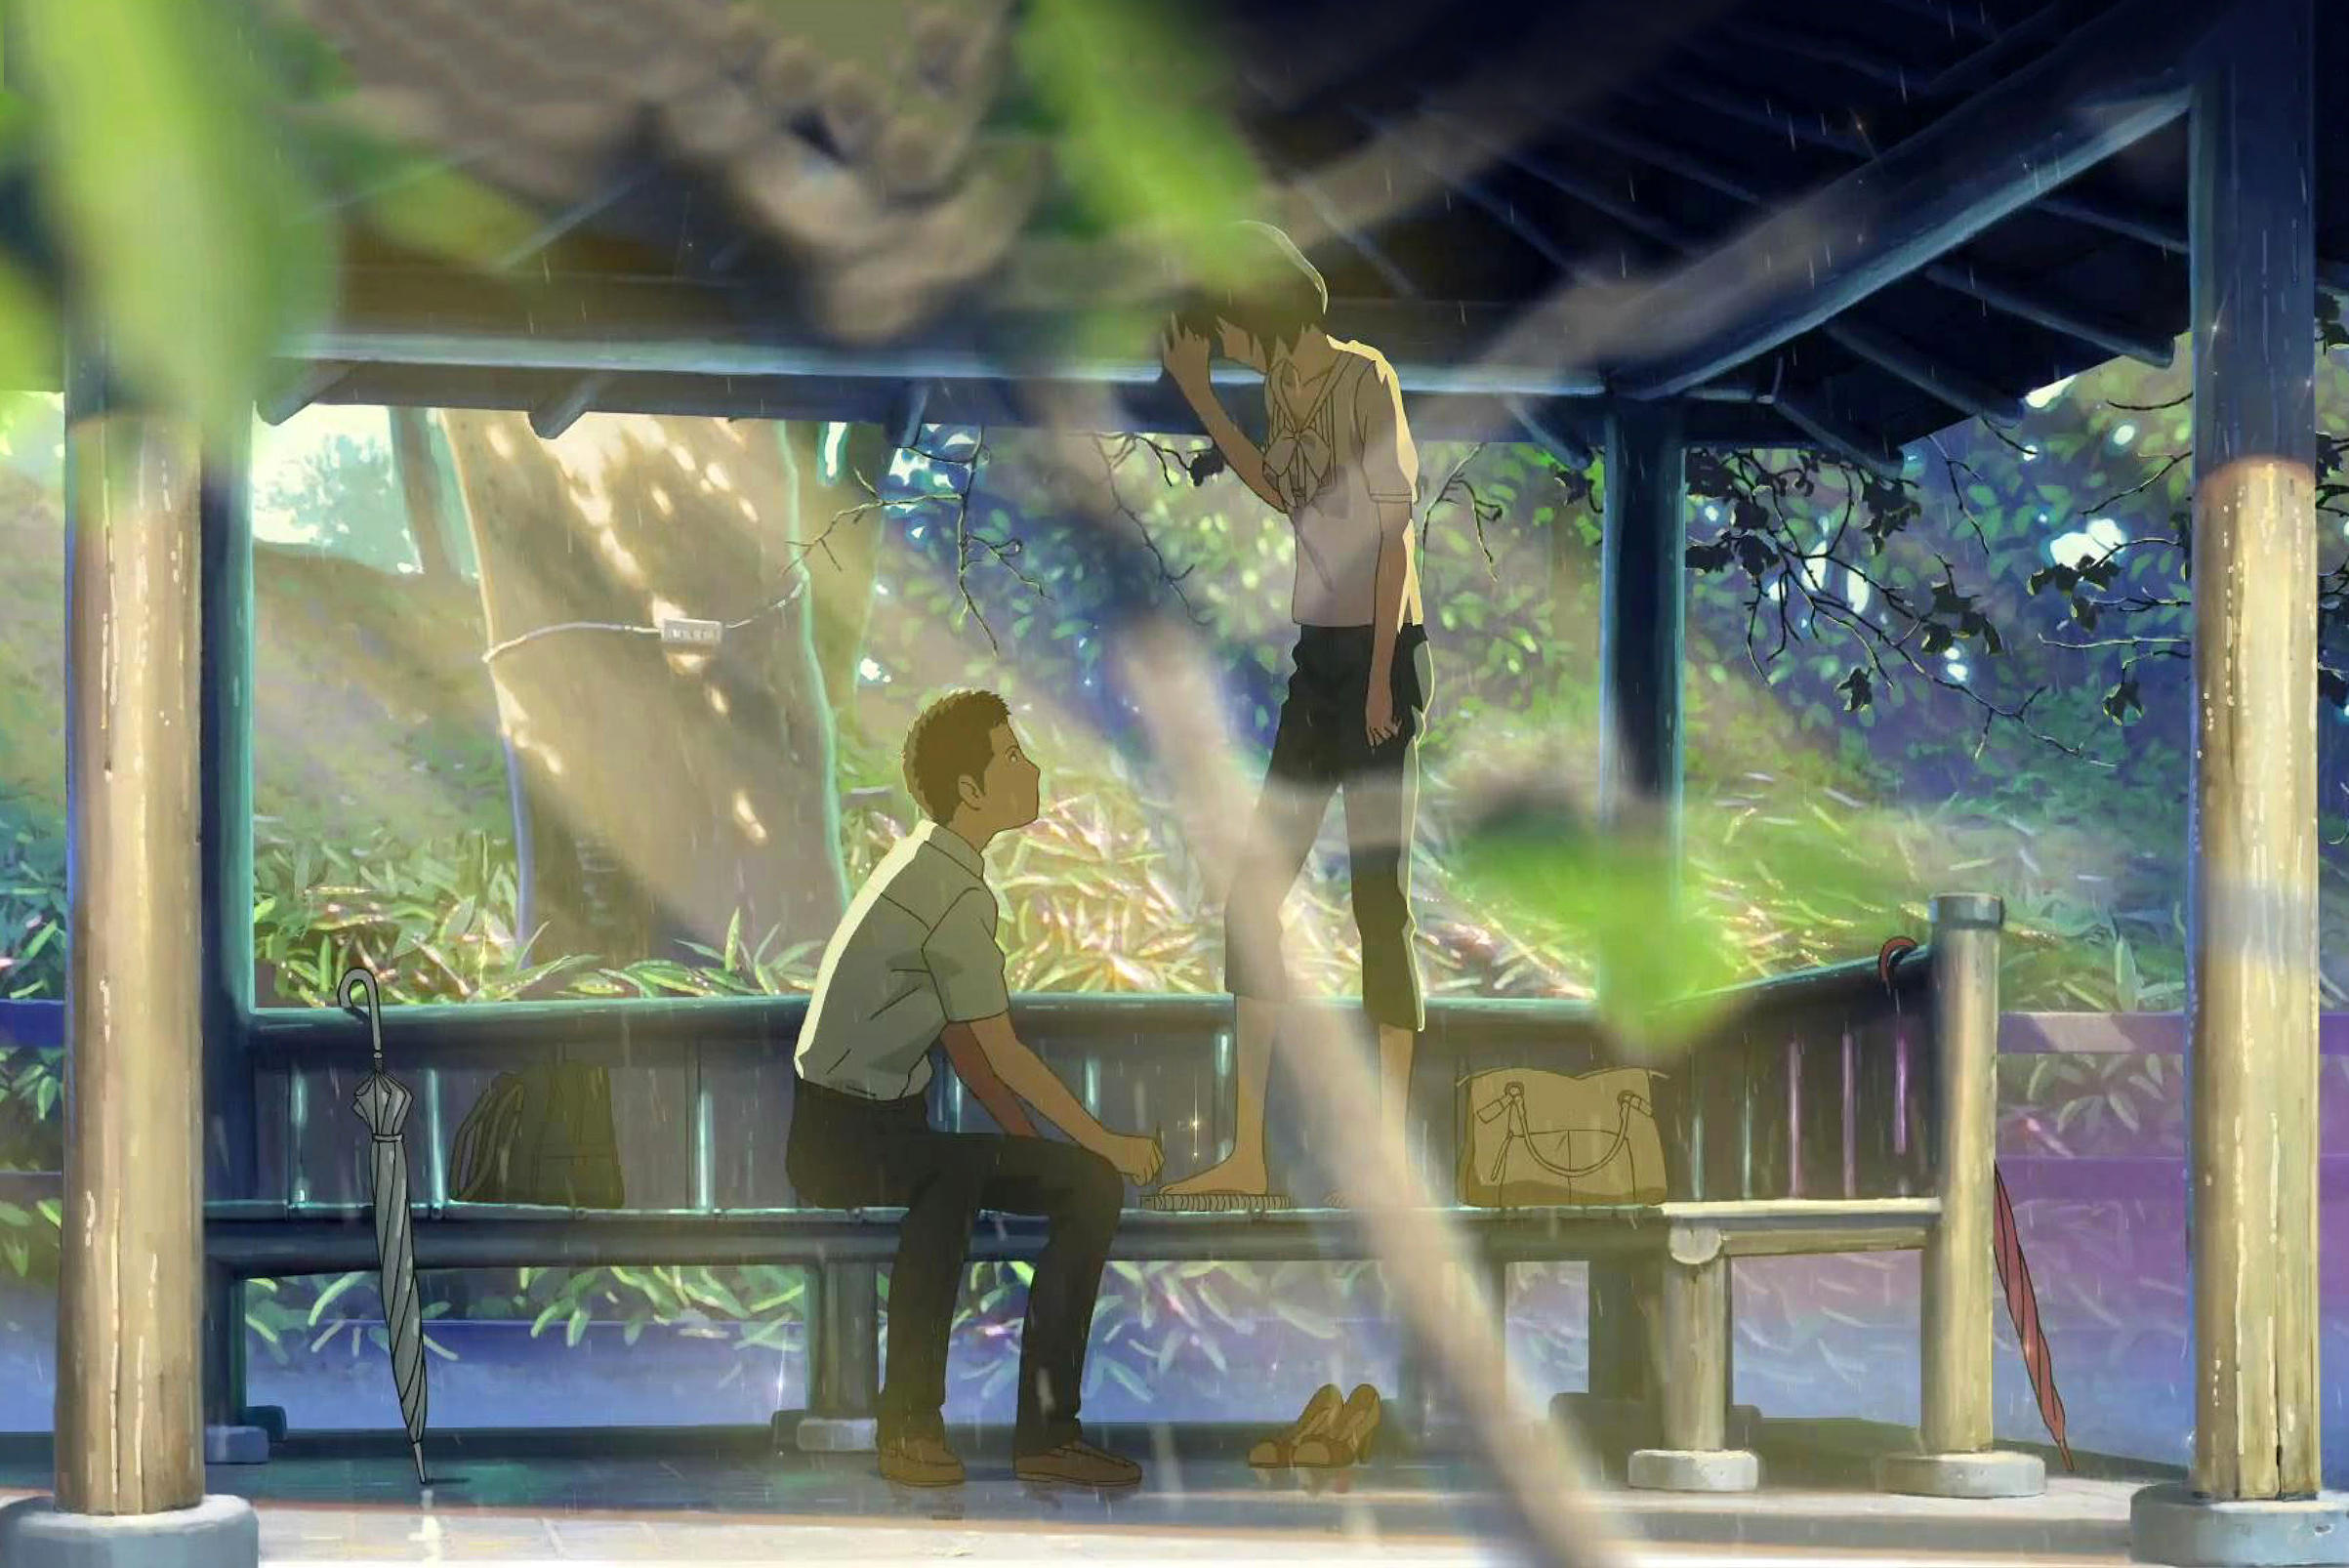 10 Anime Films You Should Watch If You Like Studio Ghibli 5 Centimeters Per Second A